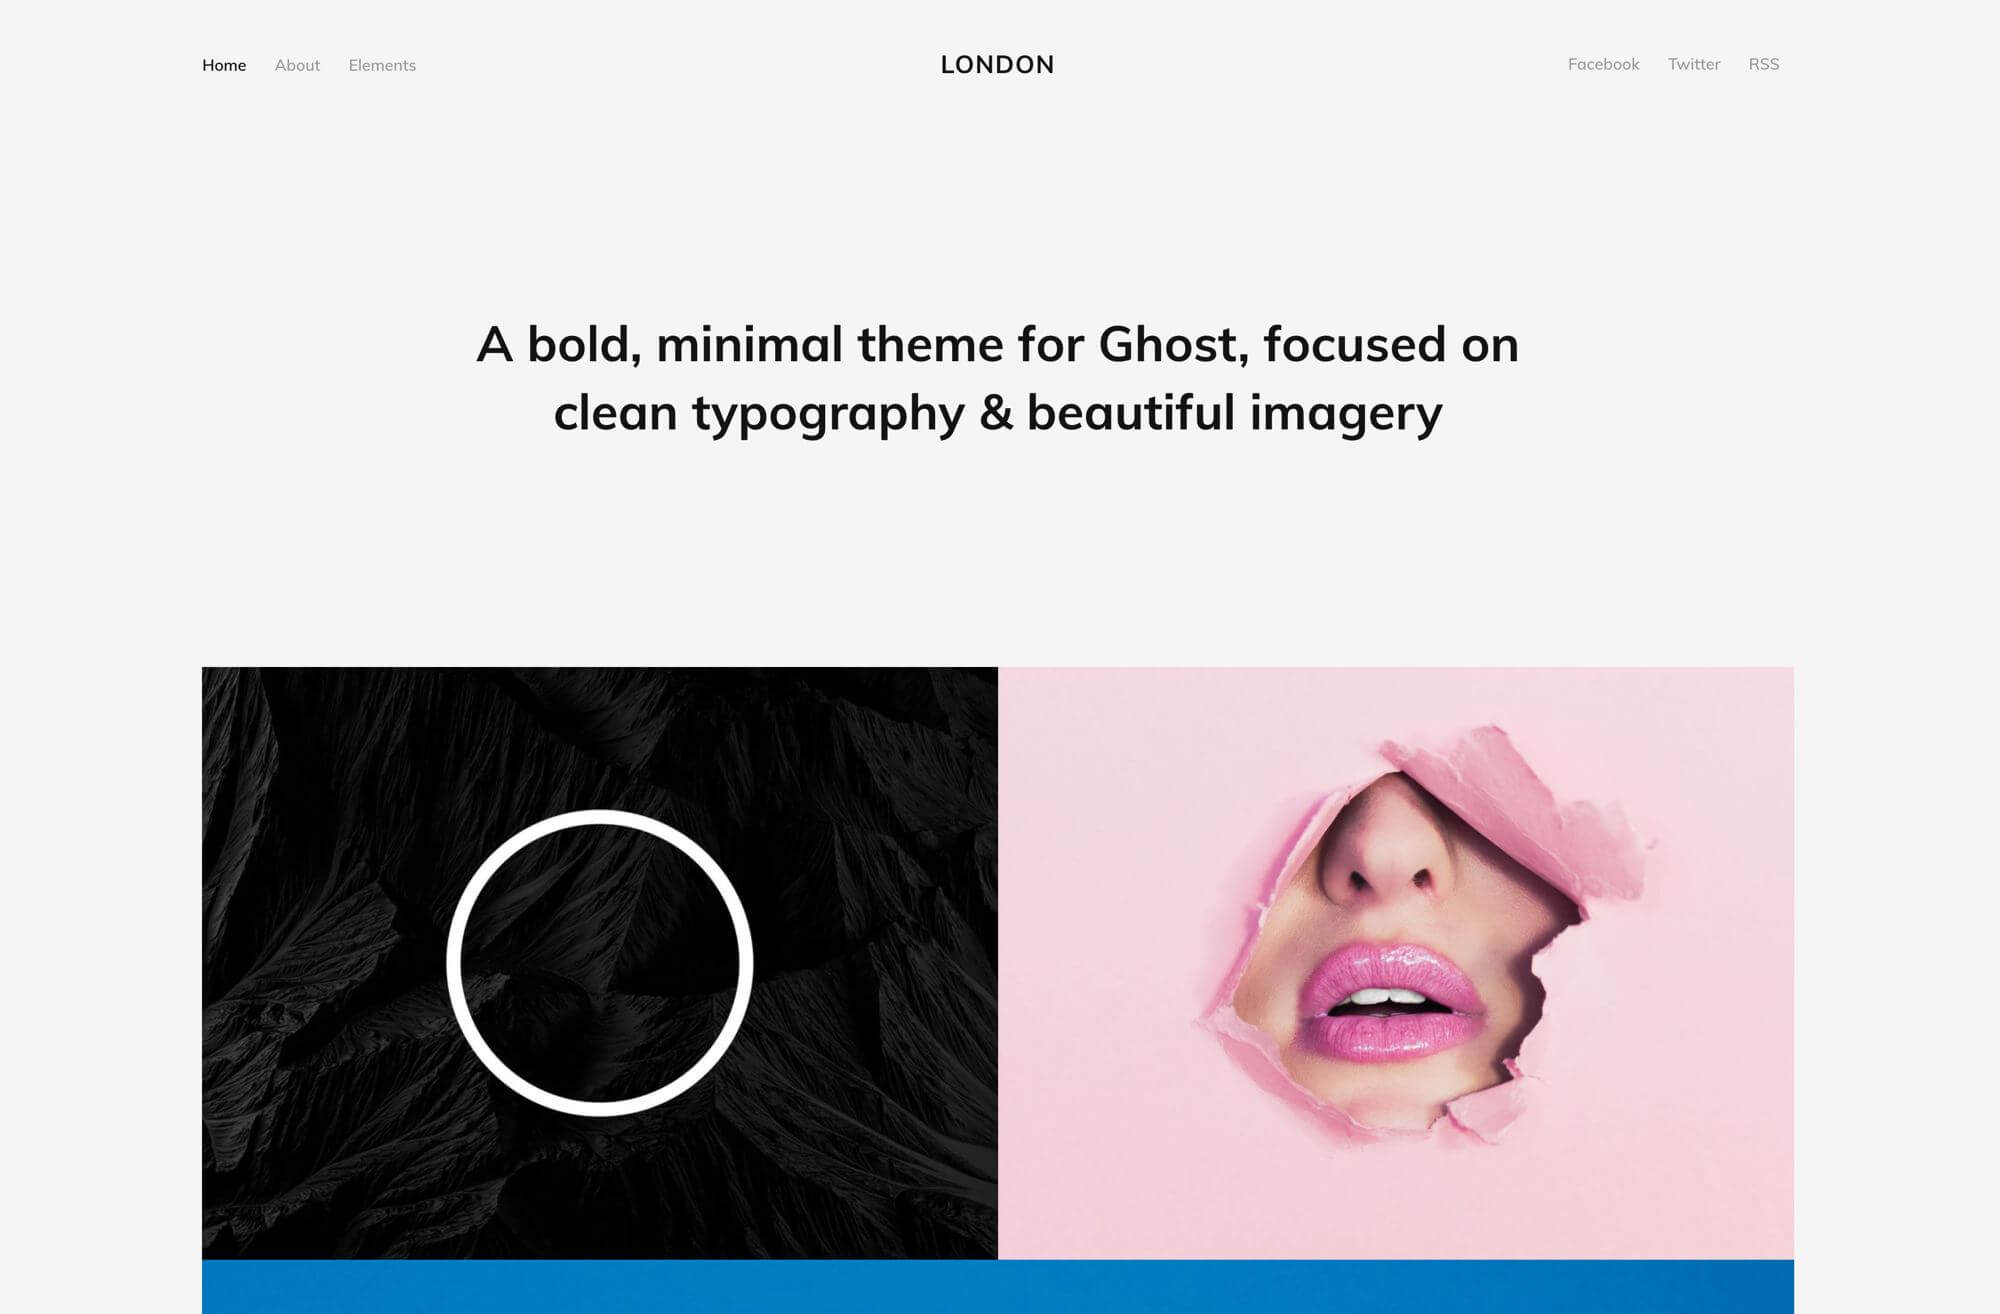 A custom and image-centric theme for Ghost